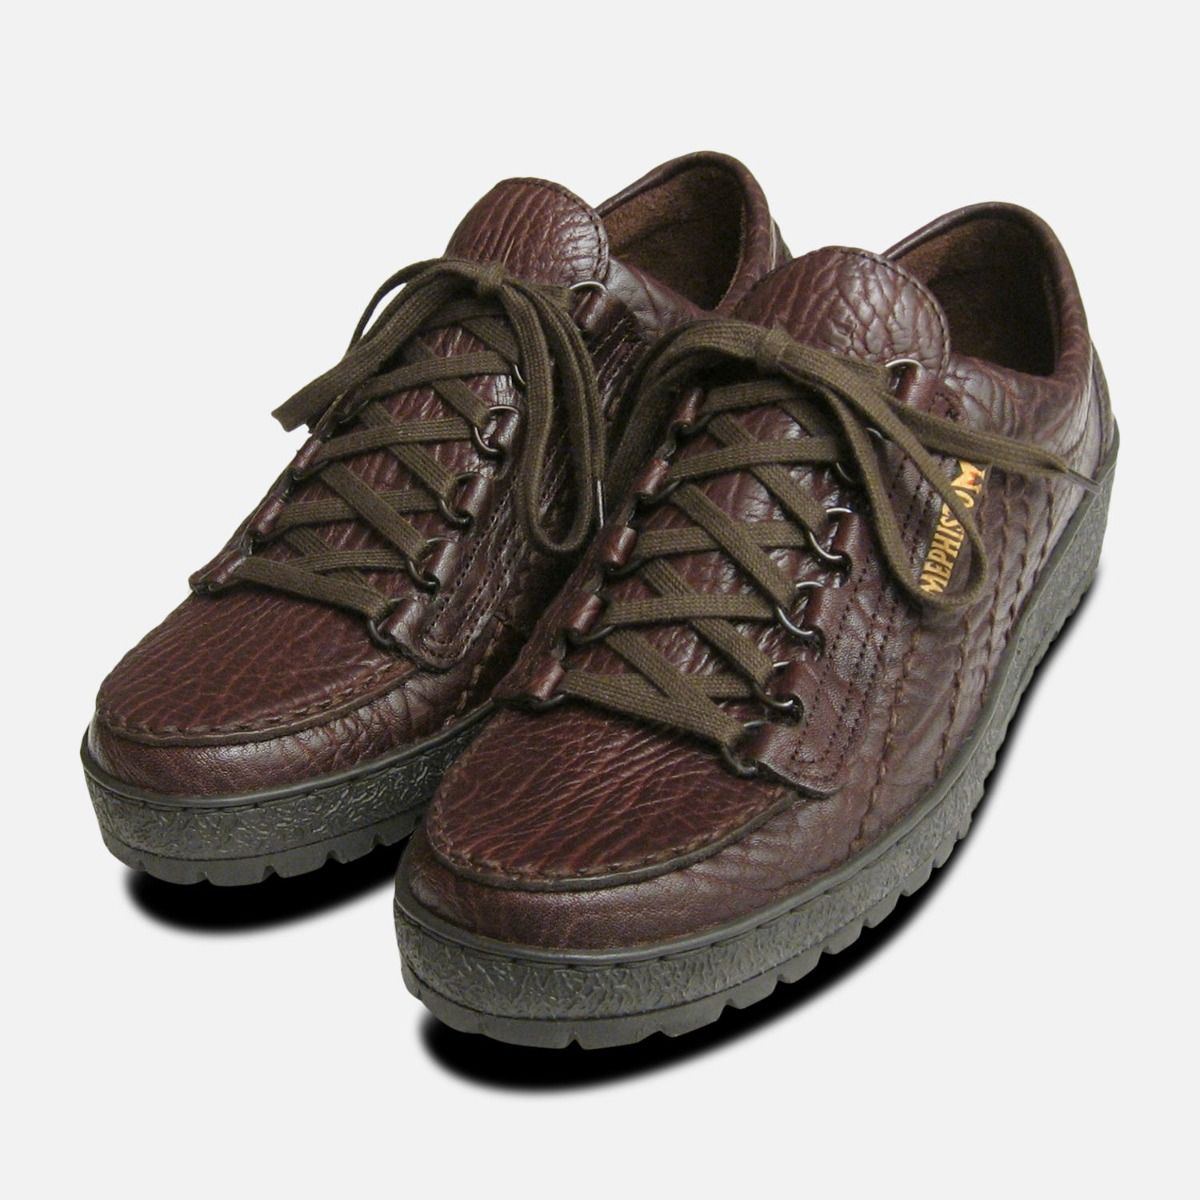 3827fcf93f585 Mens Mephisto Shoes Rainbow in Brown